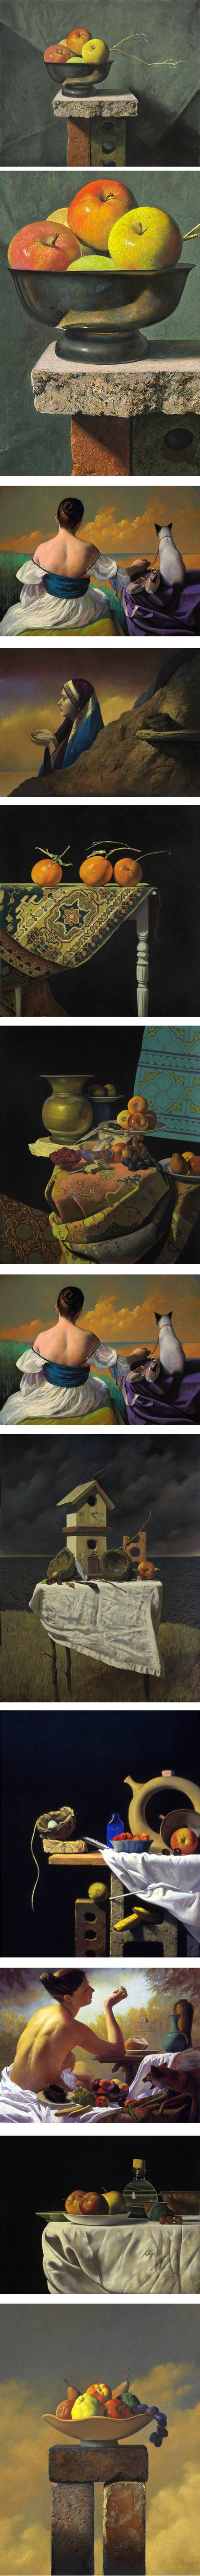 Ron Monsma, pastel and oil, figures and still life